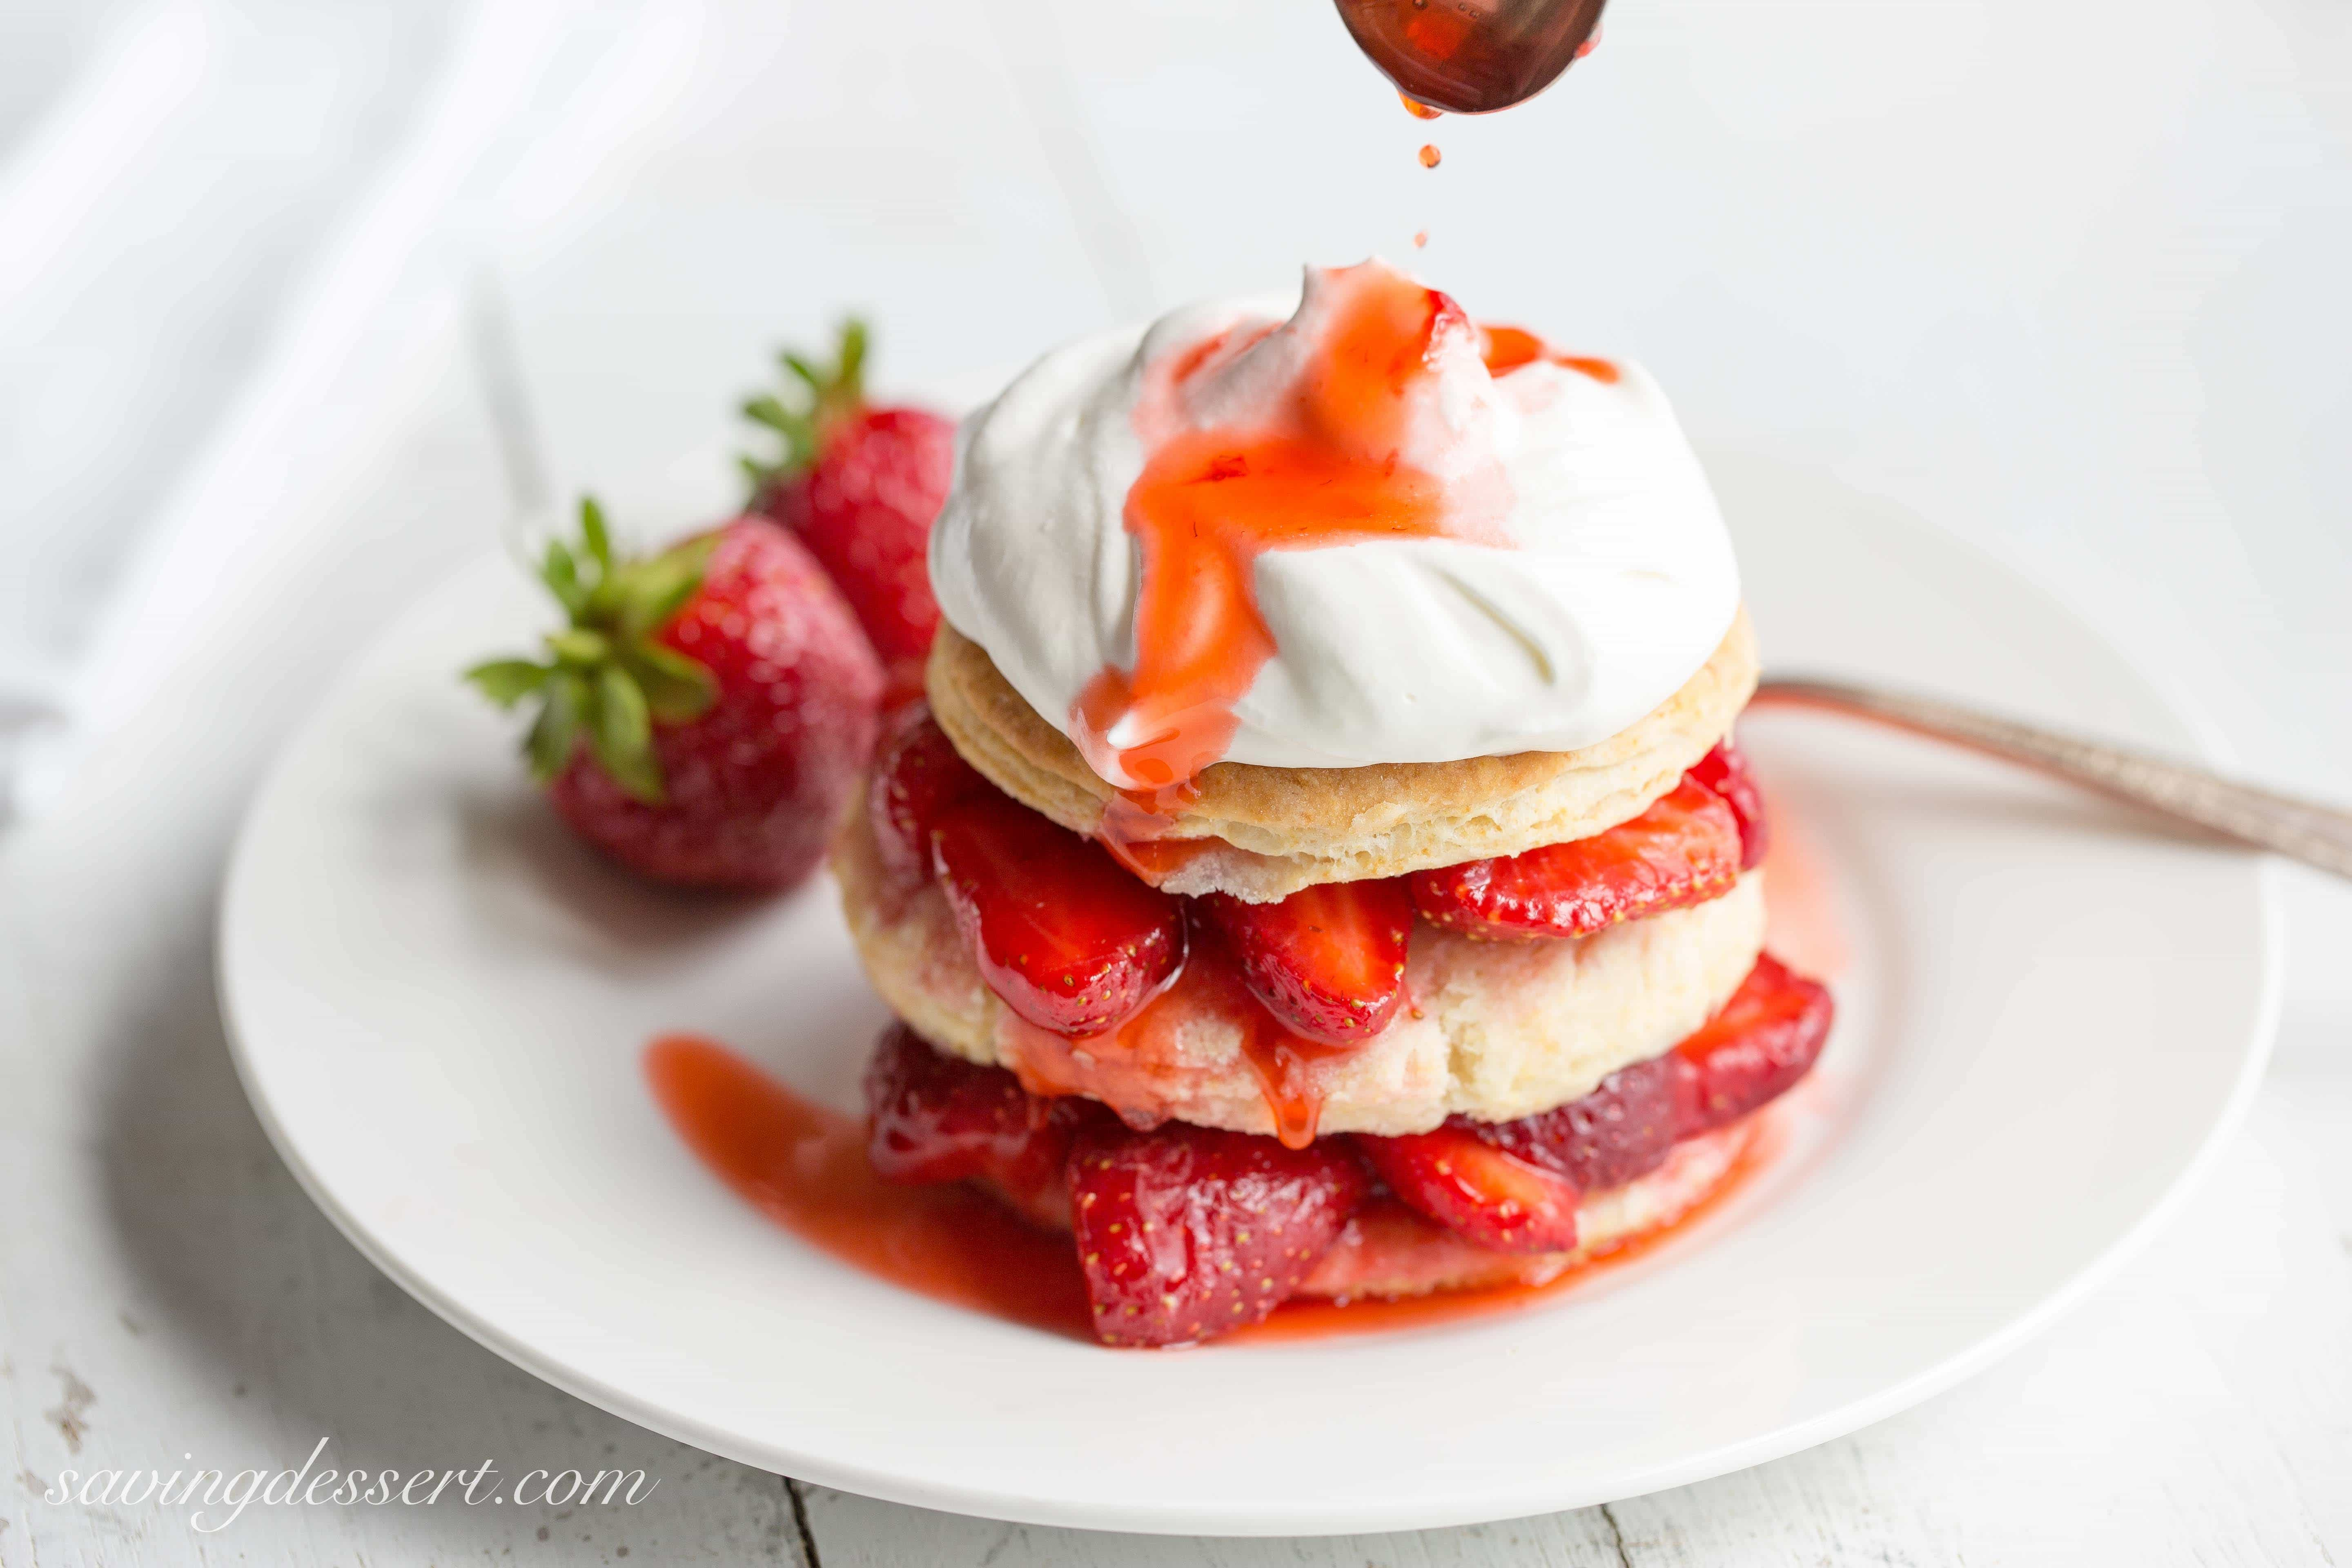 Very pity homemade deer lick strawberry syrup